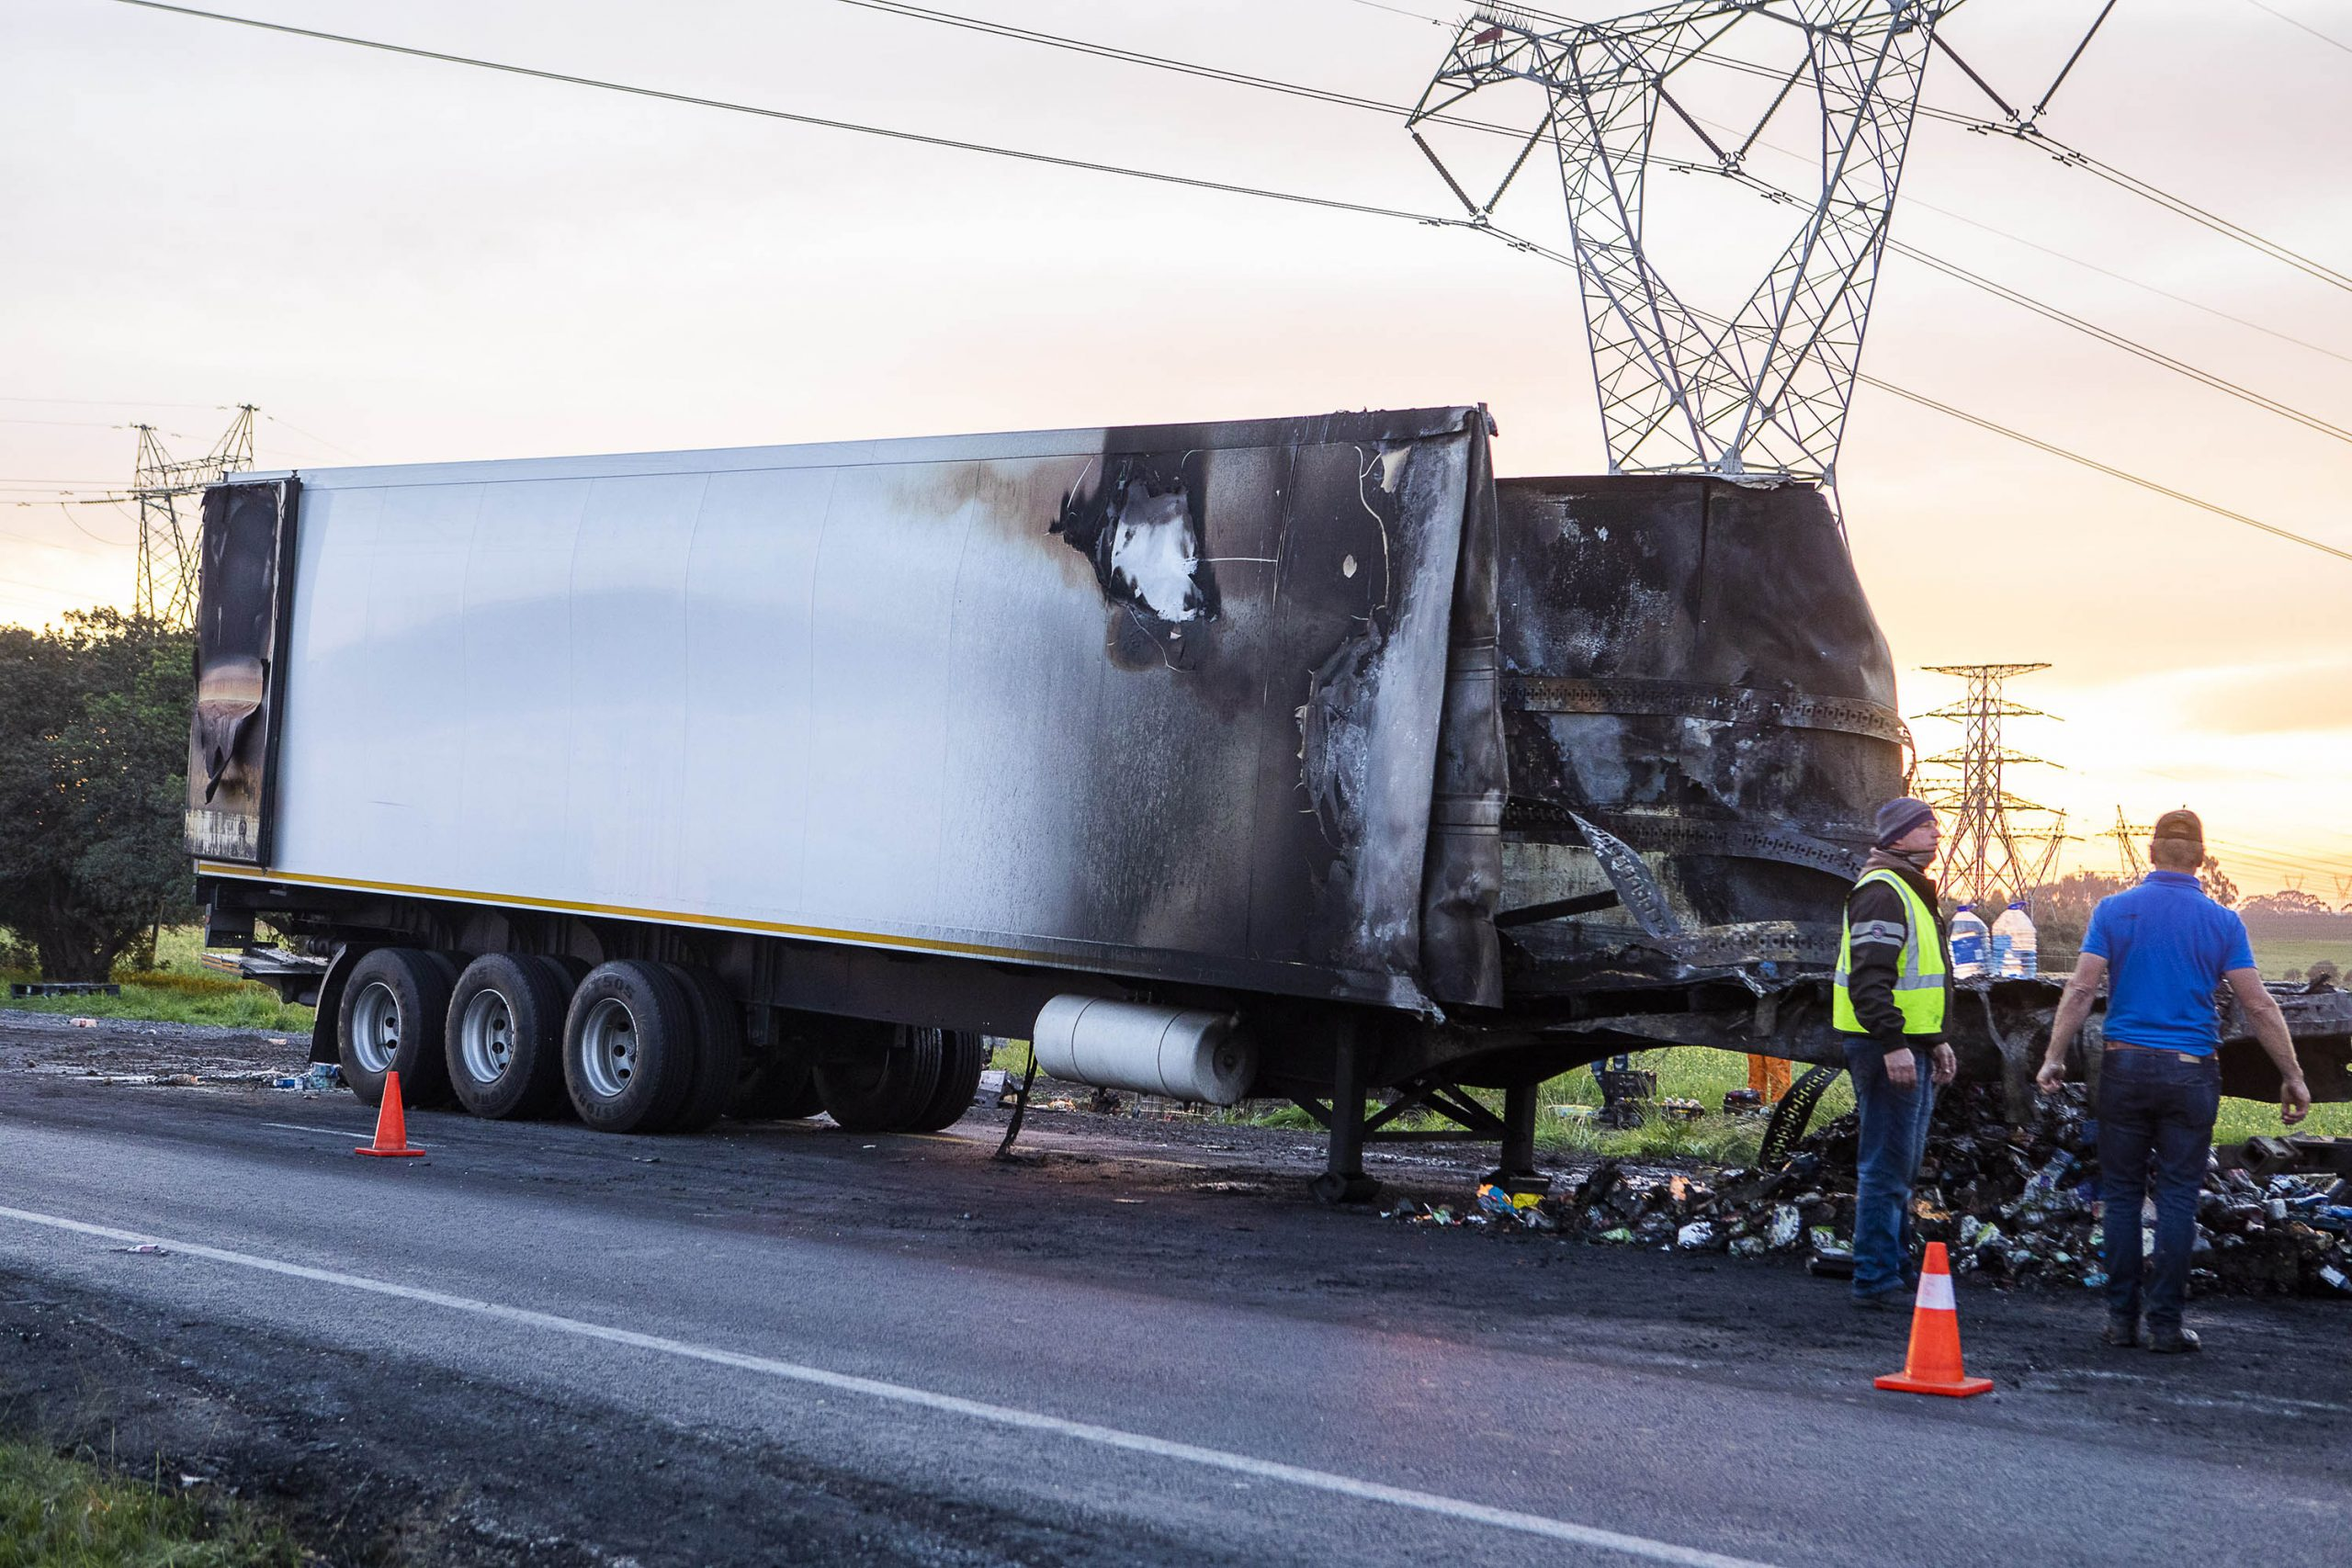 8 July 2020: A burnt-out Pick n Pay truck on the N1 near Klipheuwel in the Western Cape. The N7 and N1 were reportedly both affected by protests after a nationwide call for truck drivers to stop operating in protest against the employment of foreign drivers. They threatened to shut down the entire country. (Photograph by Jacques Stander/ Gallo Images via Getty Images)